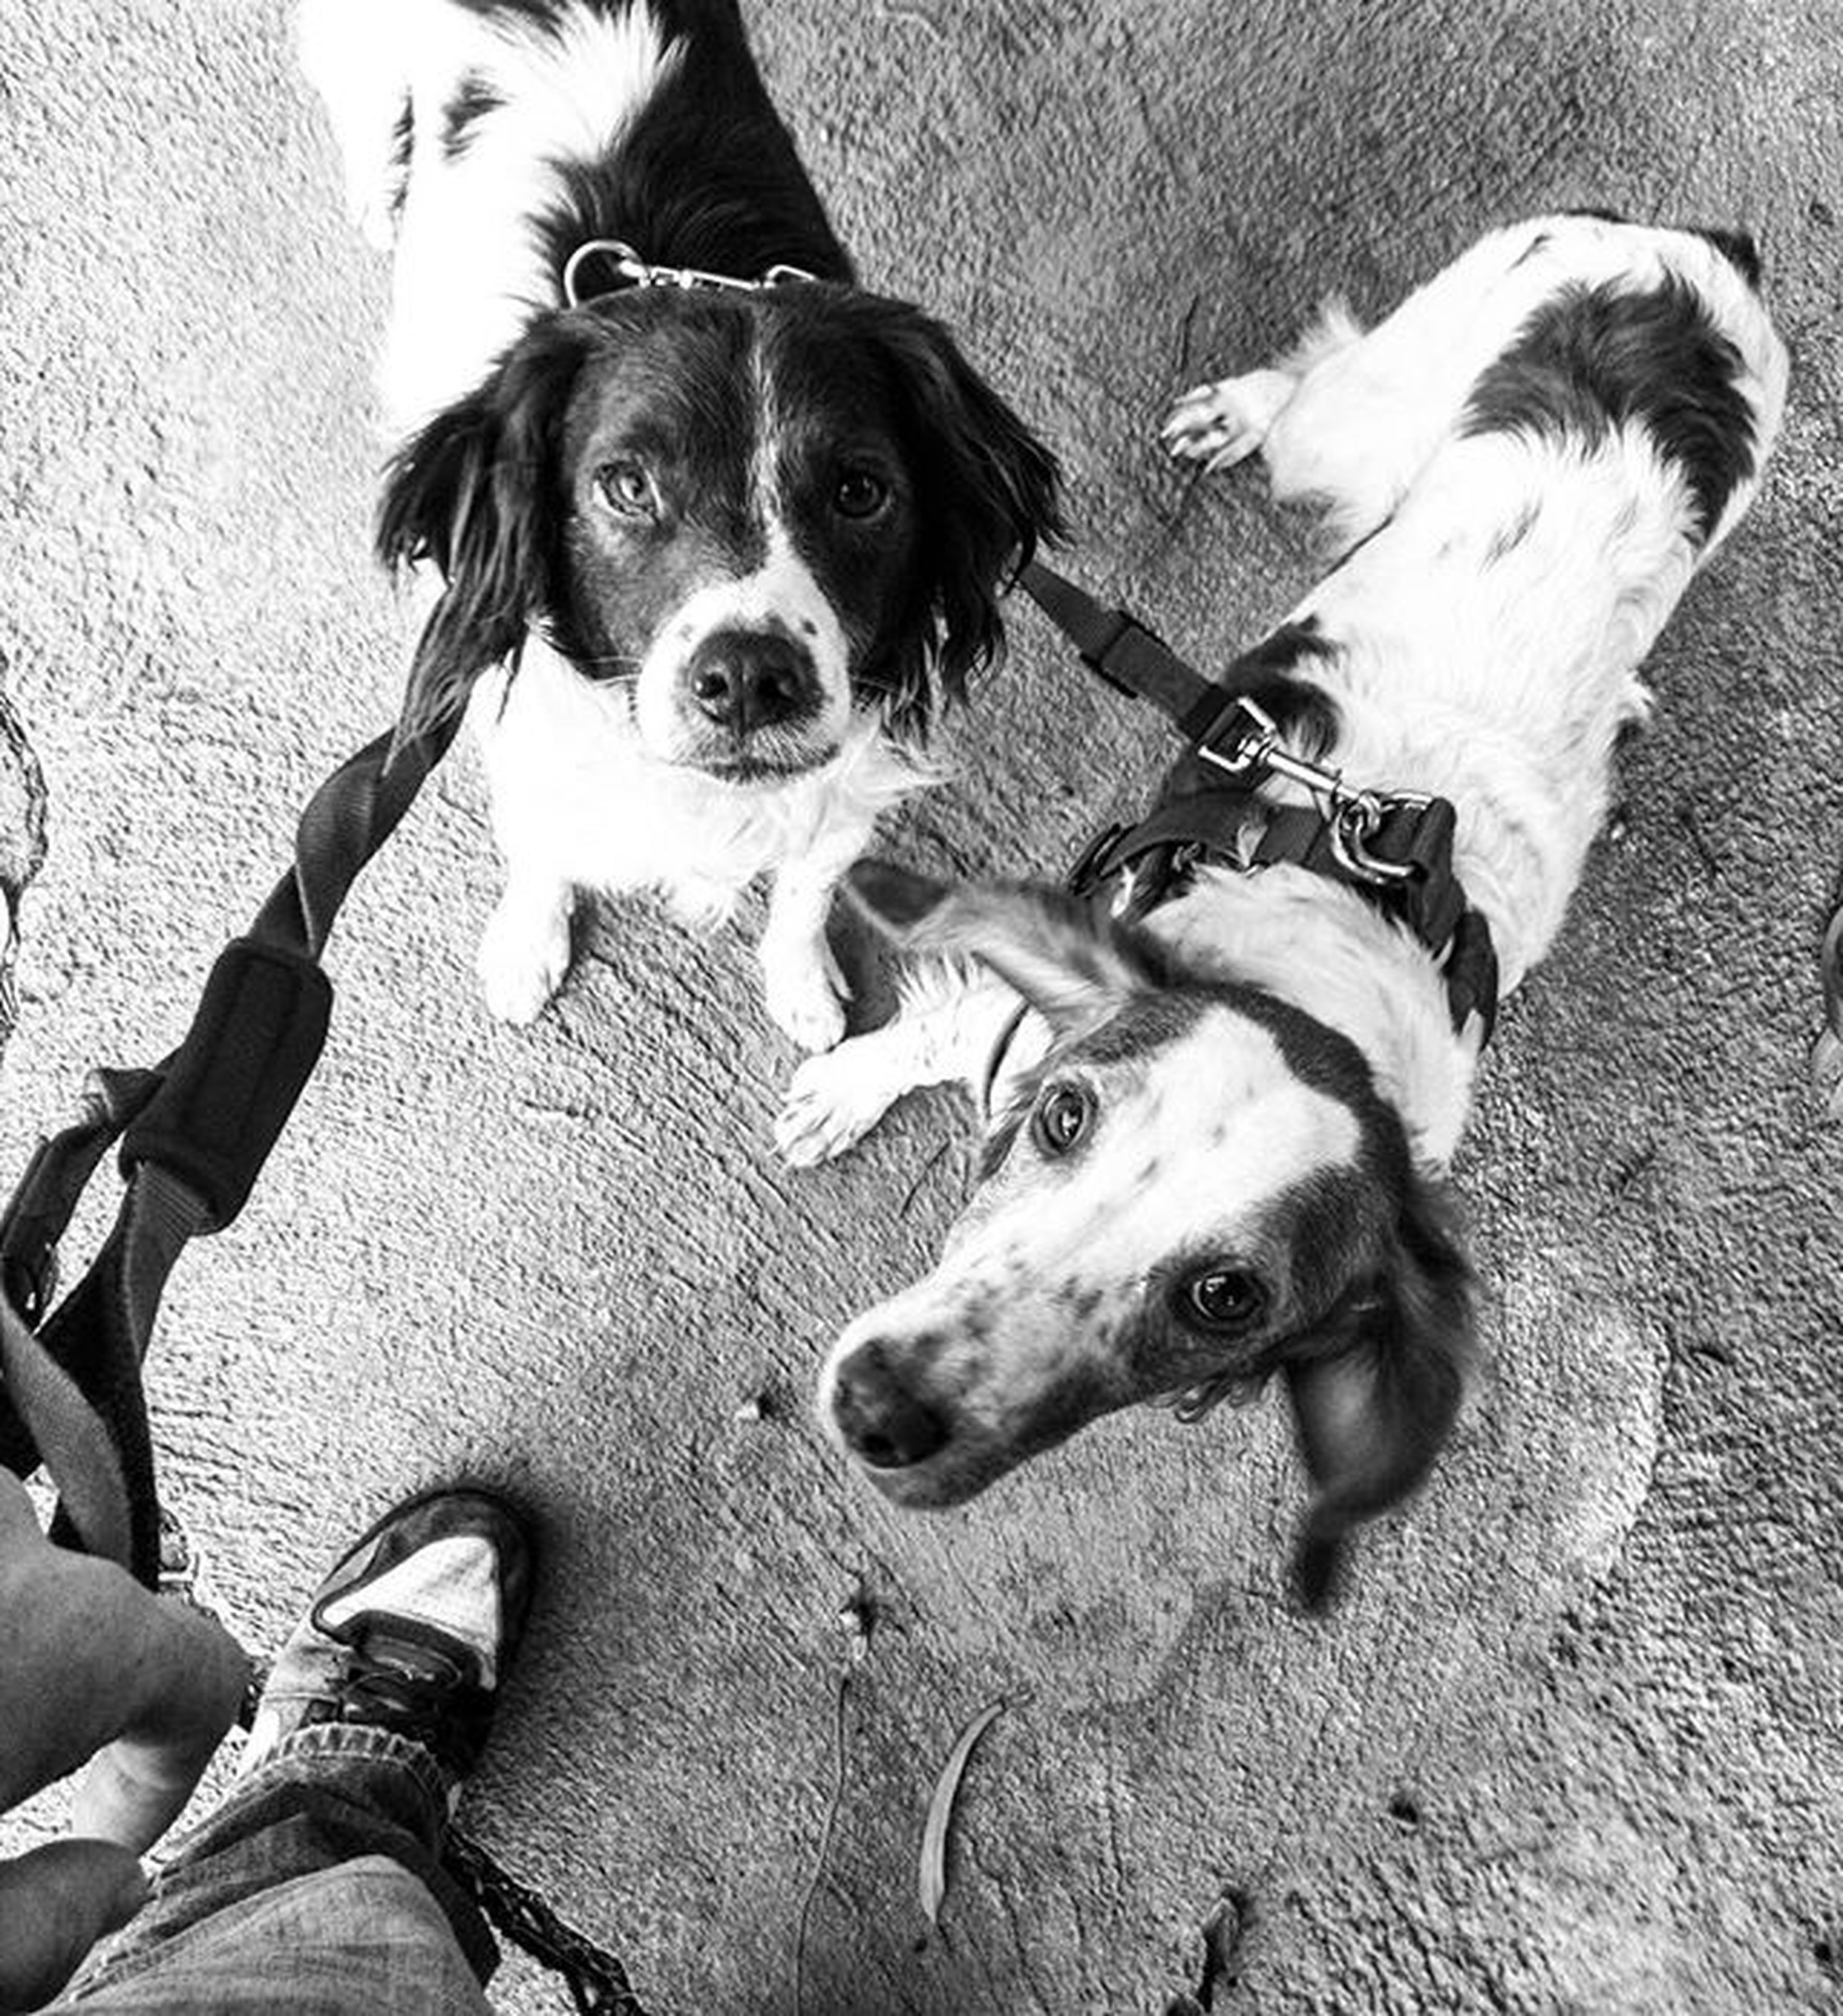 dog, pets, domestic animals, animal themes, mammal, one animal, looking at camera, portrait, high angle view, pet collar, puppy, pet leash, sitting, canine, loyalty, no people, standing, day, relaxation, two animals